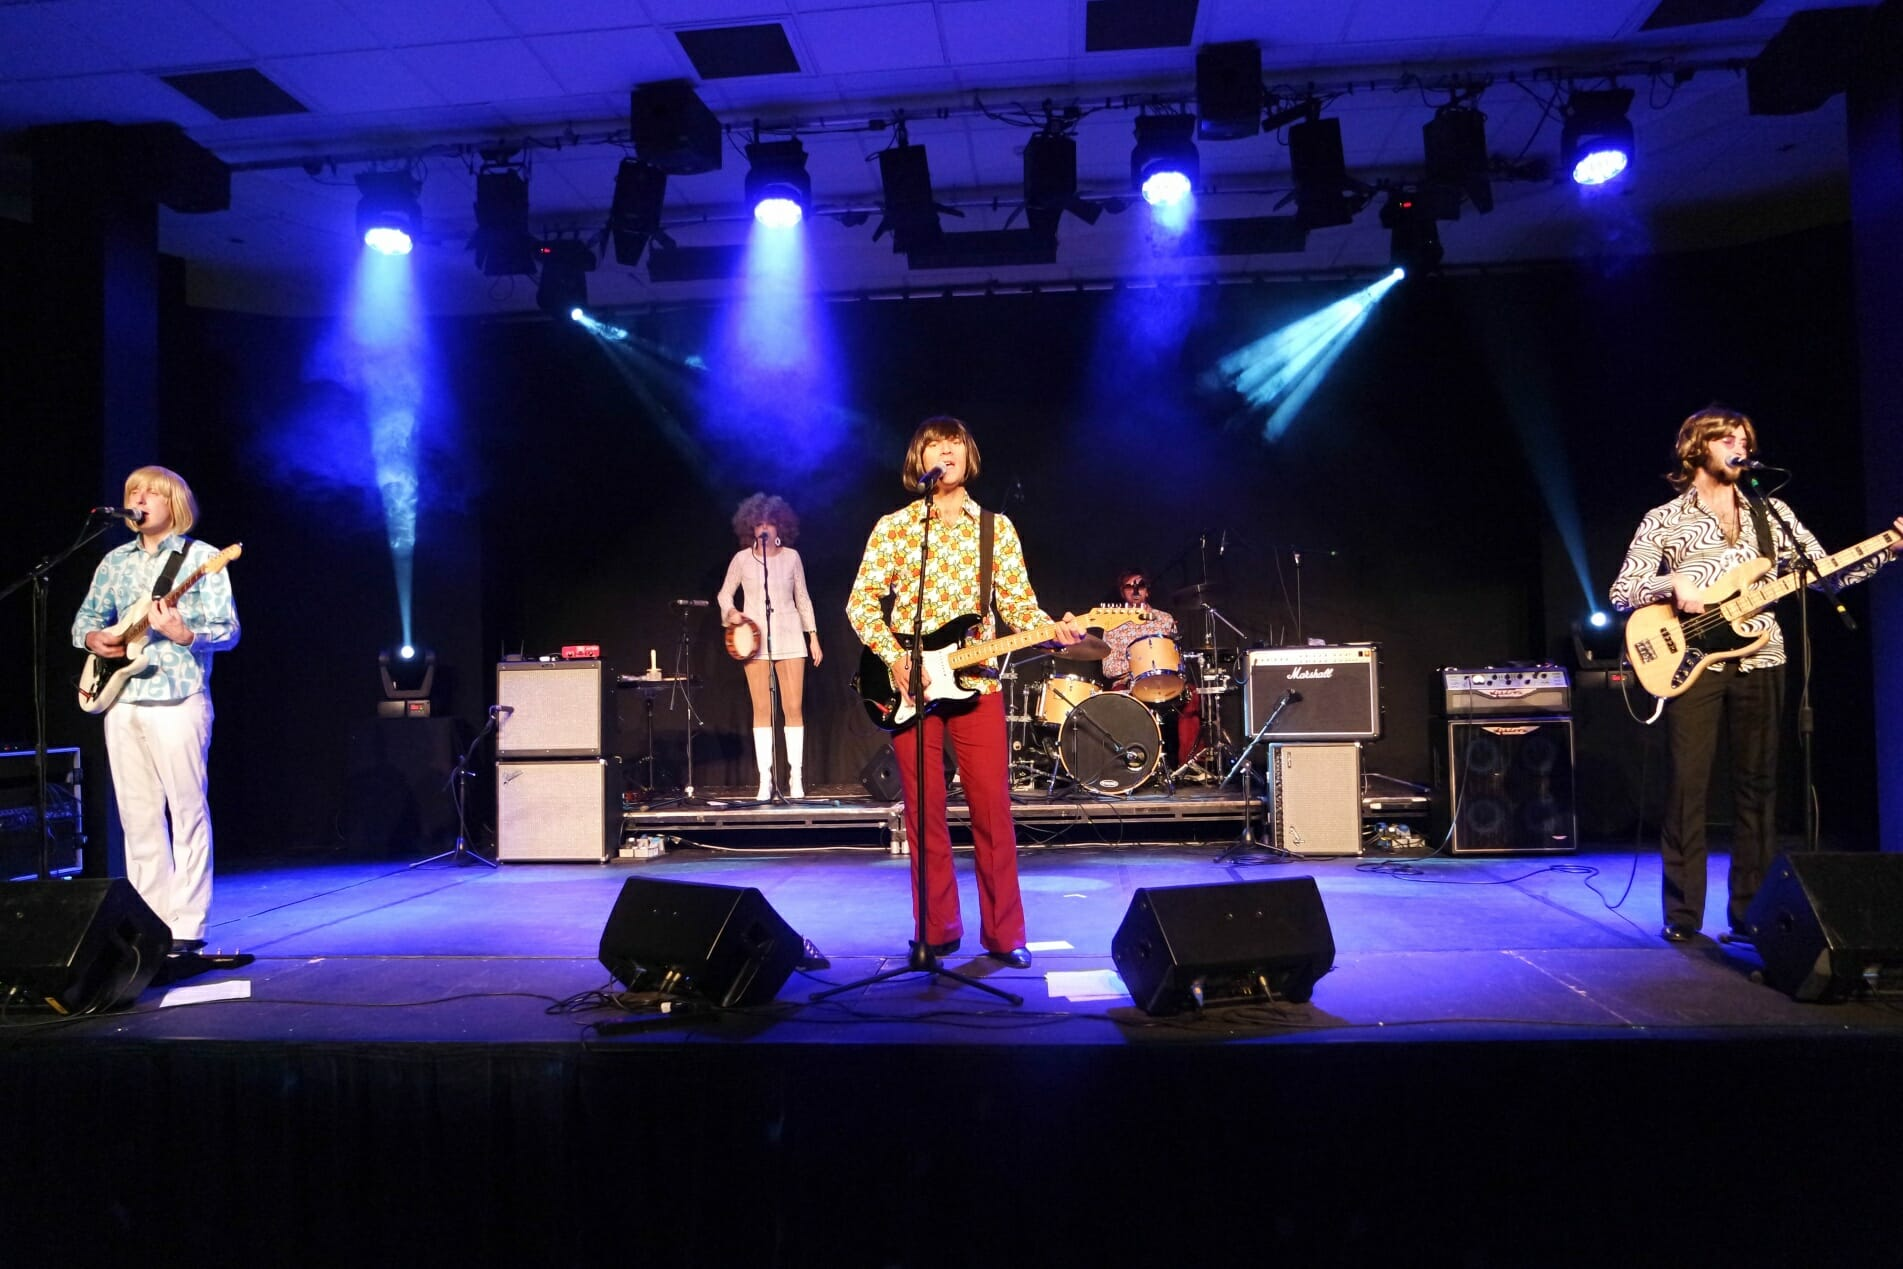 The Zoots, The Zoots 1960s show, The Zoots sixties Show, Theatre show, Beacon Wantage, The Zoots band, Sixties tribute band, Sixties Cover Band, Band in Wiltshire, 60s band South West, 60s theatre show,